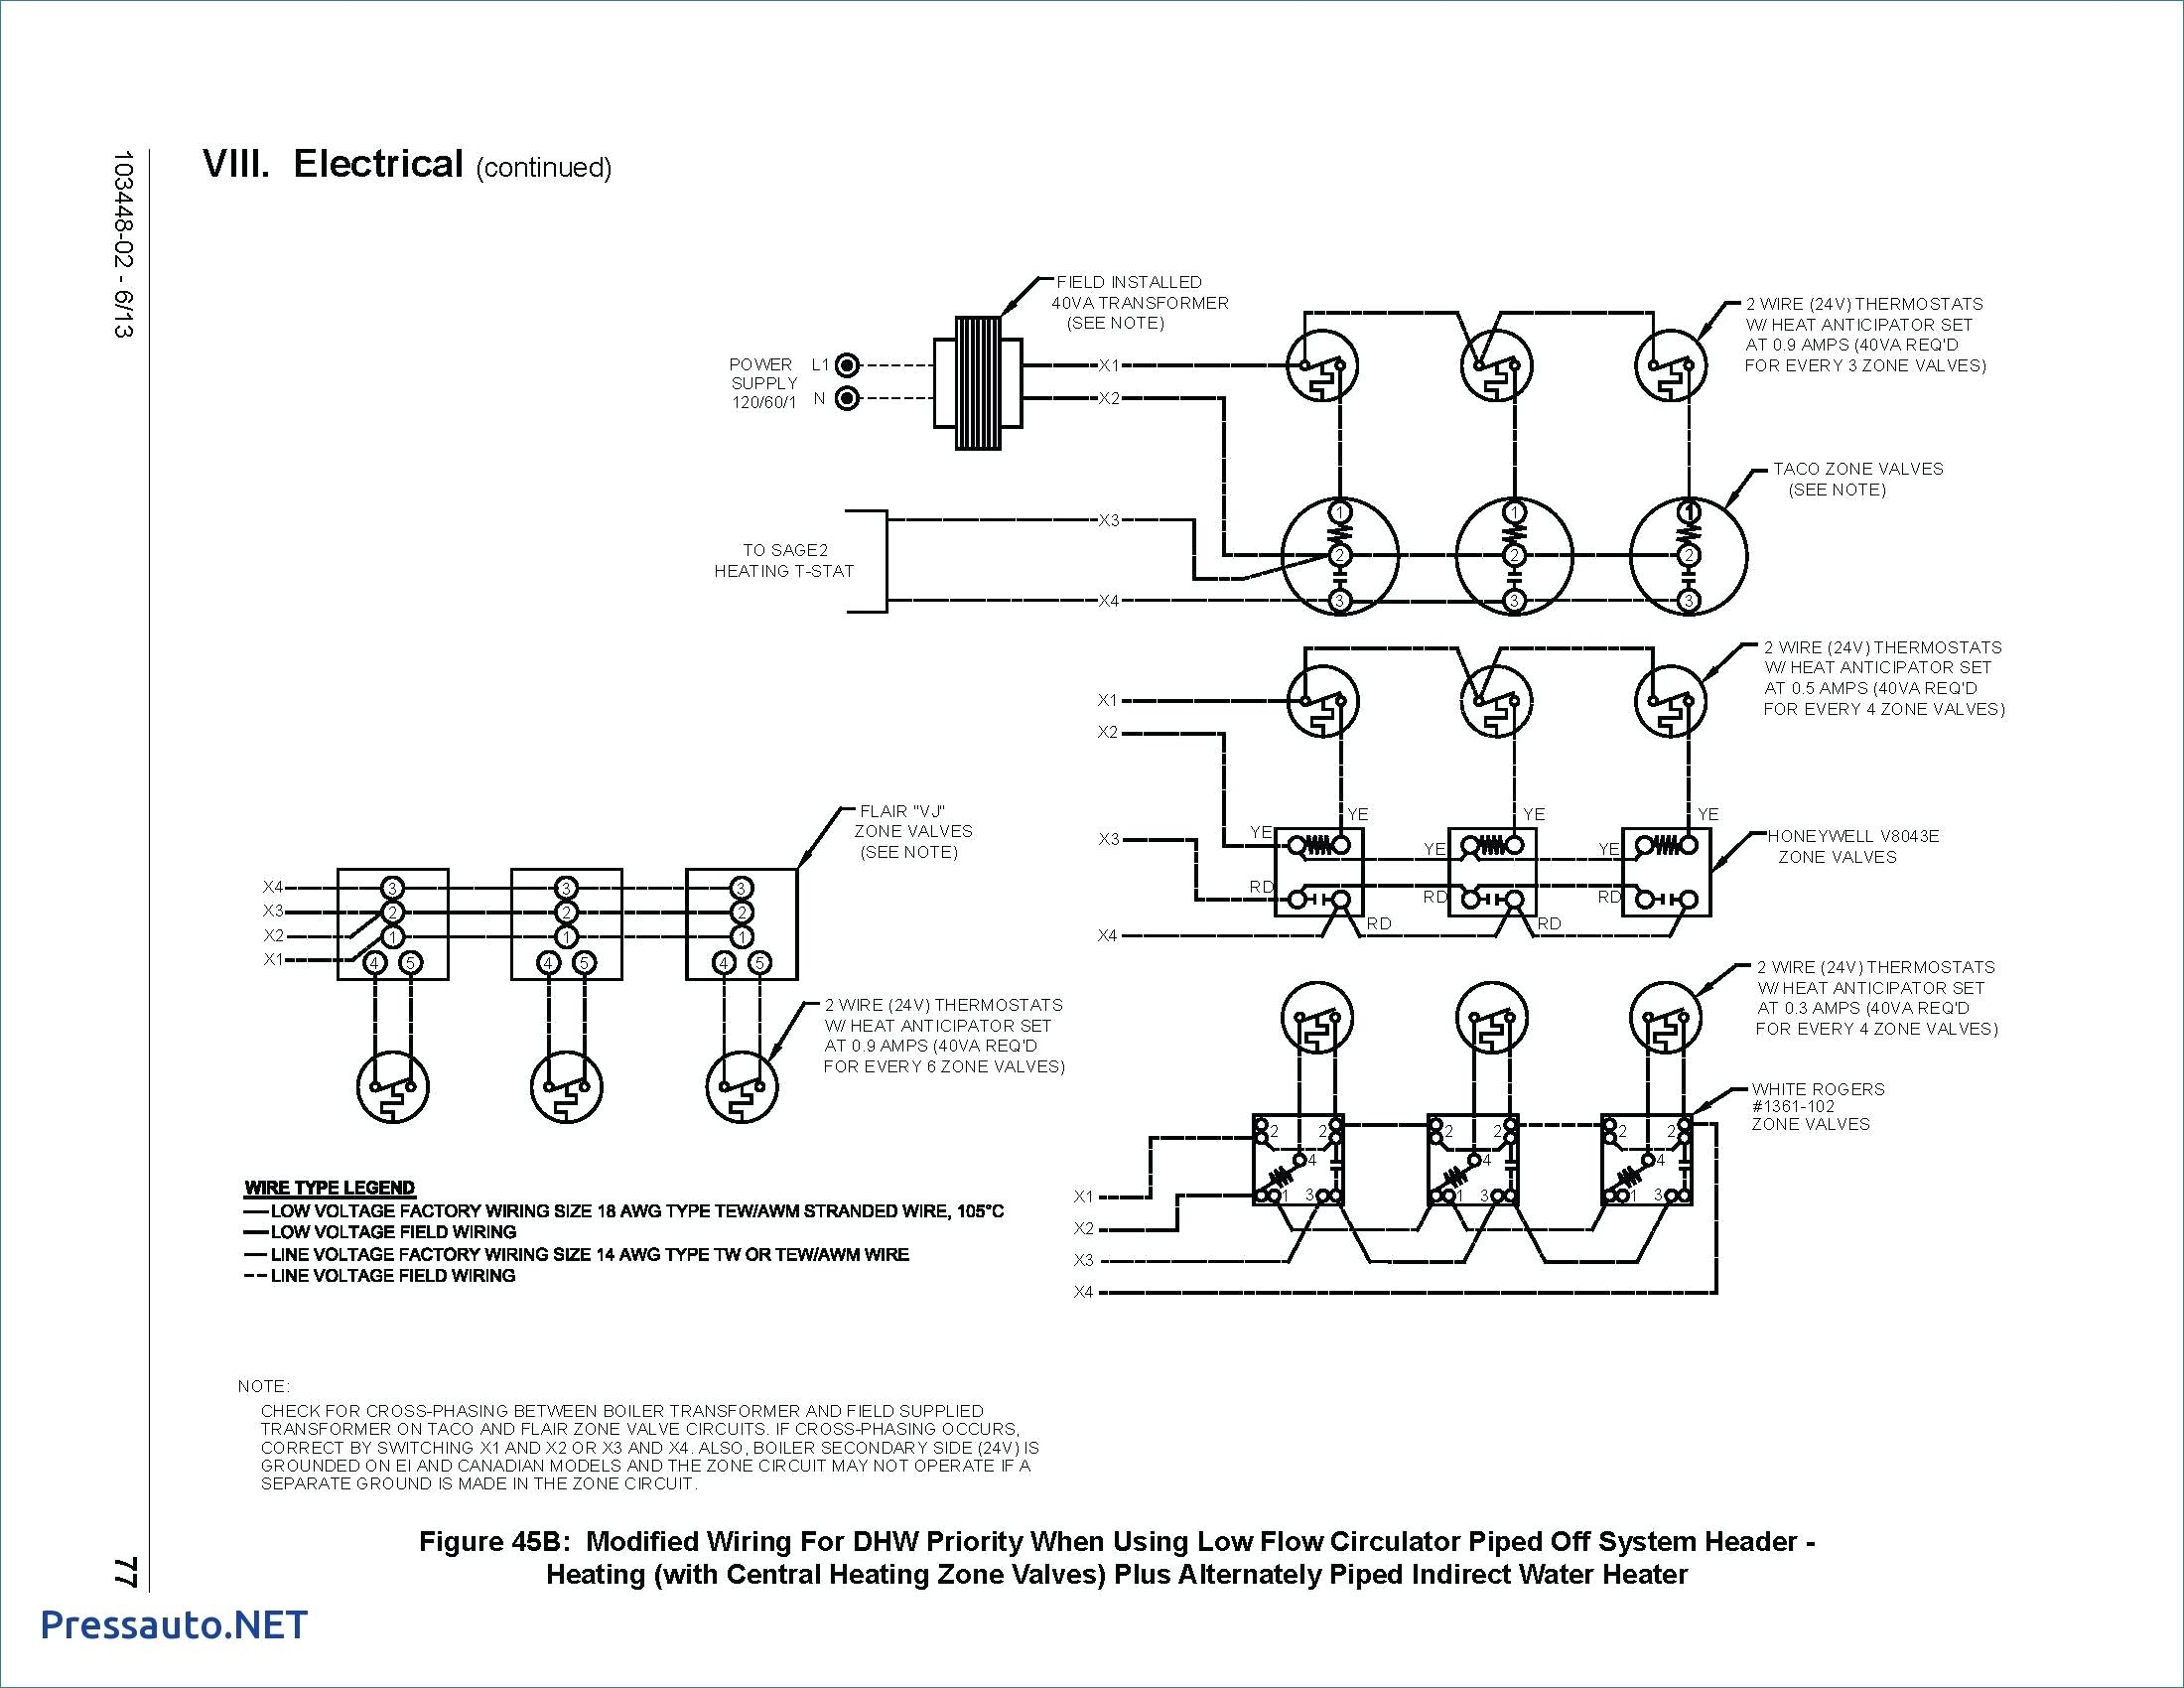 taco pumps wiring diagrams 007 capacitor taco 007 f5 wiring diagram | wiring diagram and schematics #4